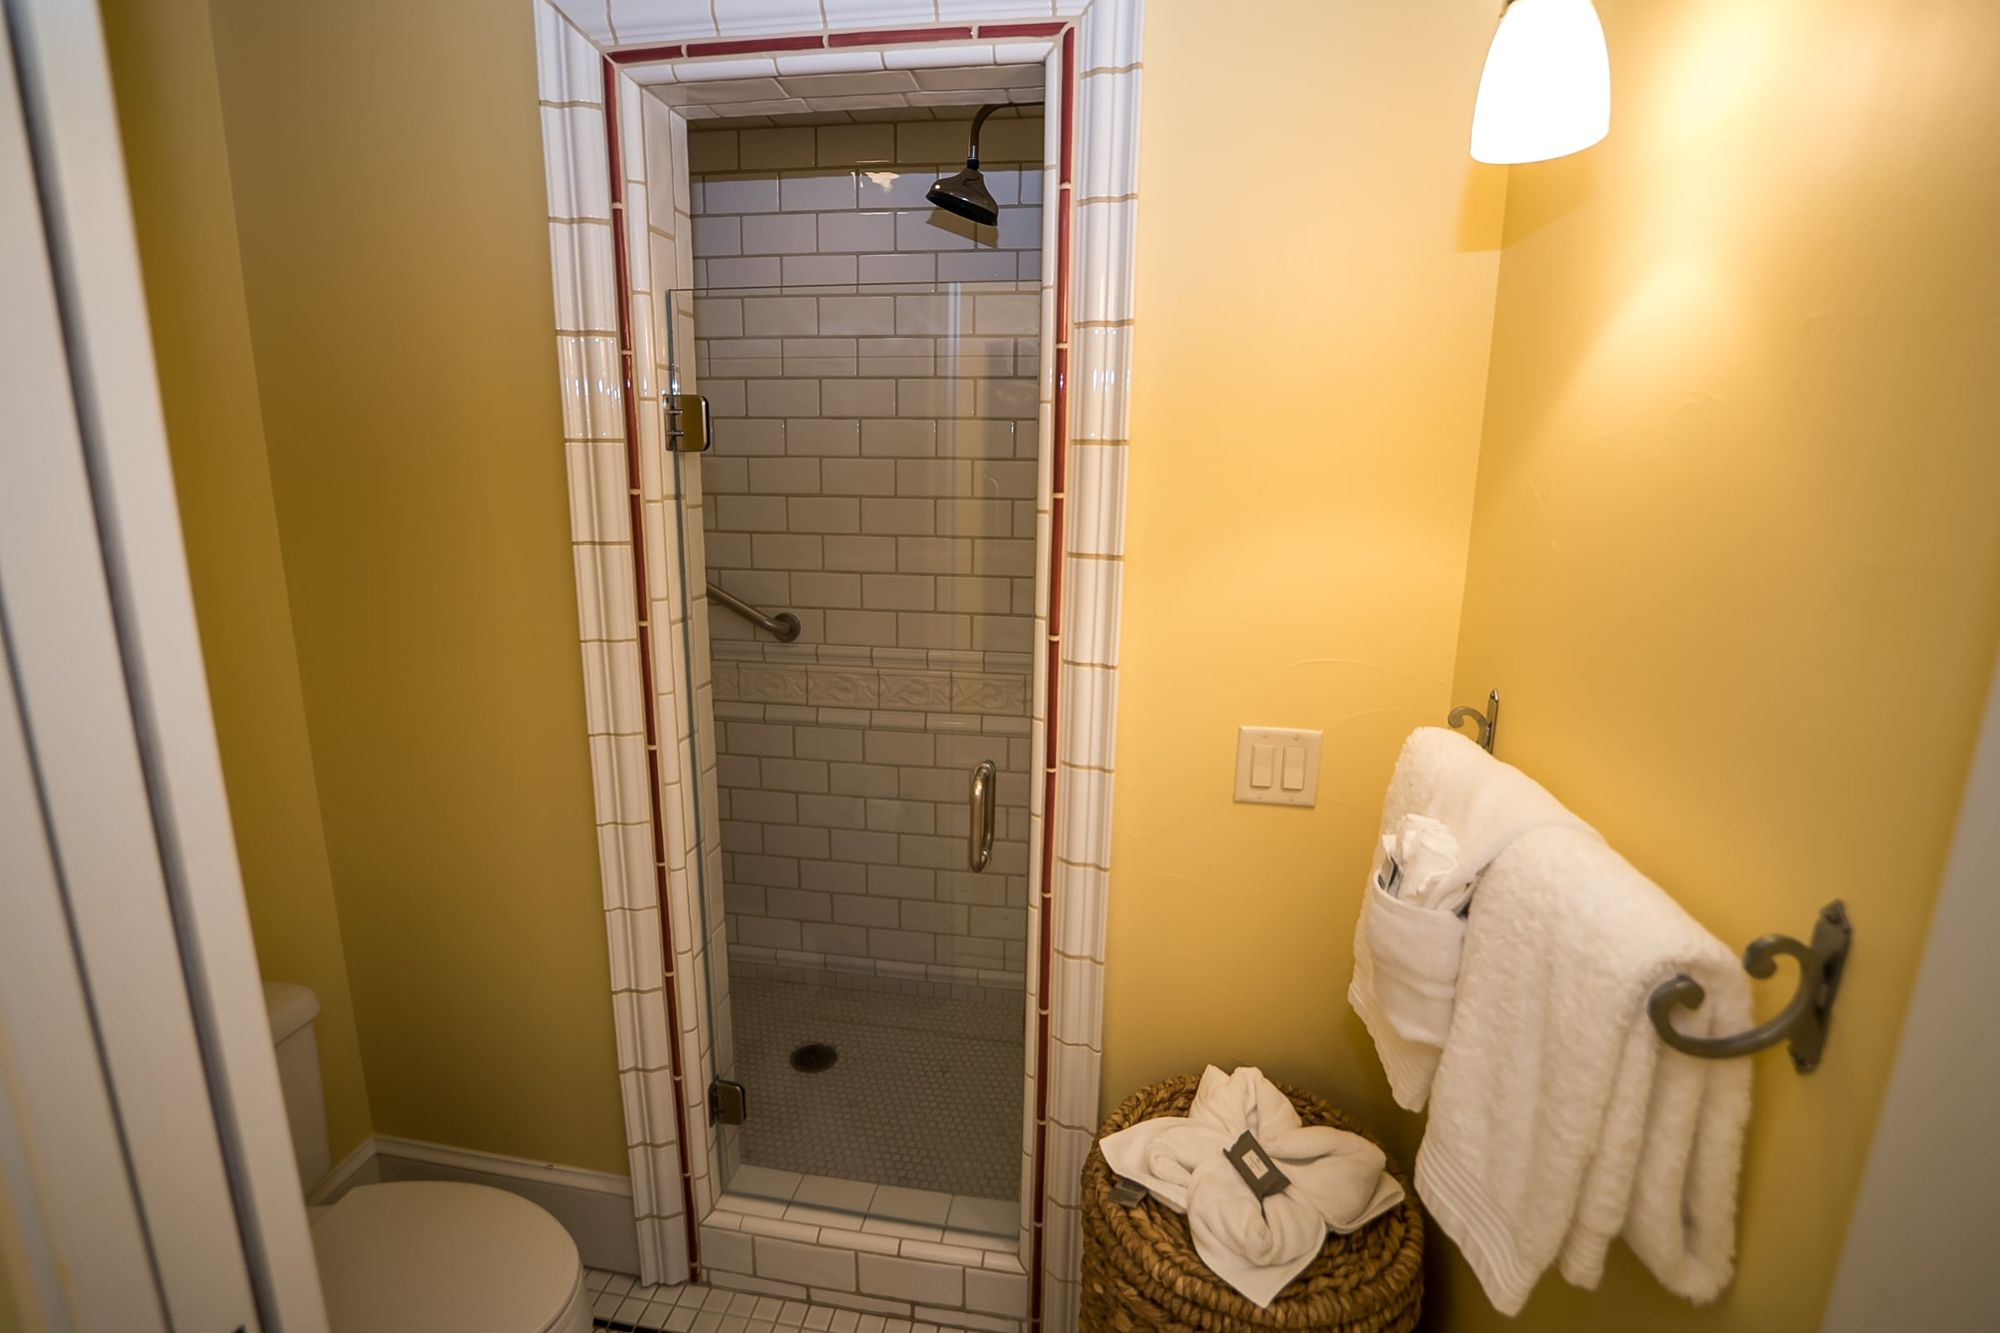 Walk-in shower, toilet, and white towels hanging on a rack